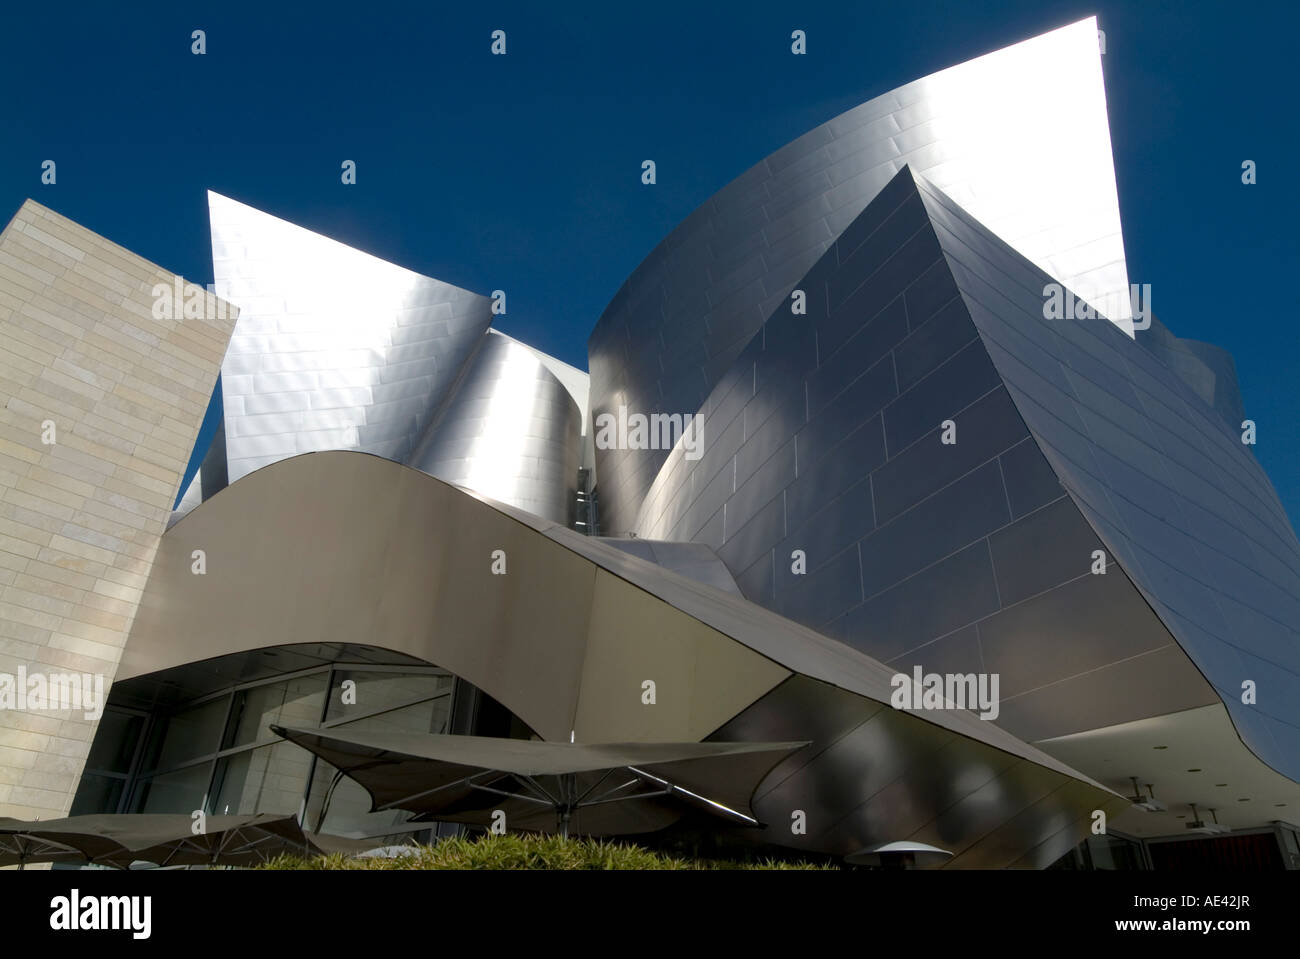 Walt Disney Concert Hall, part of Los Angeles Music Center, Frank Gehry architect, downtown, Los Angeles, California, - Stock Image